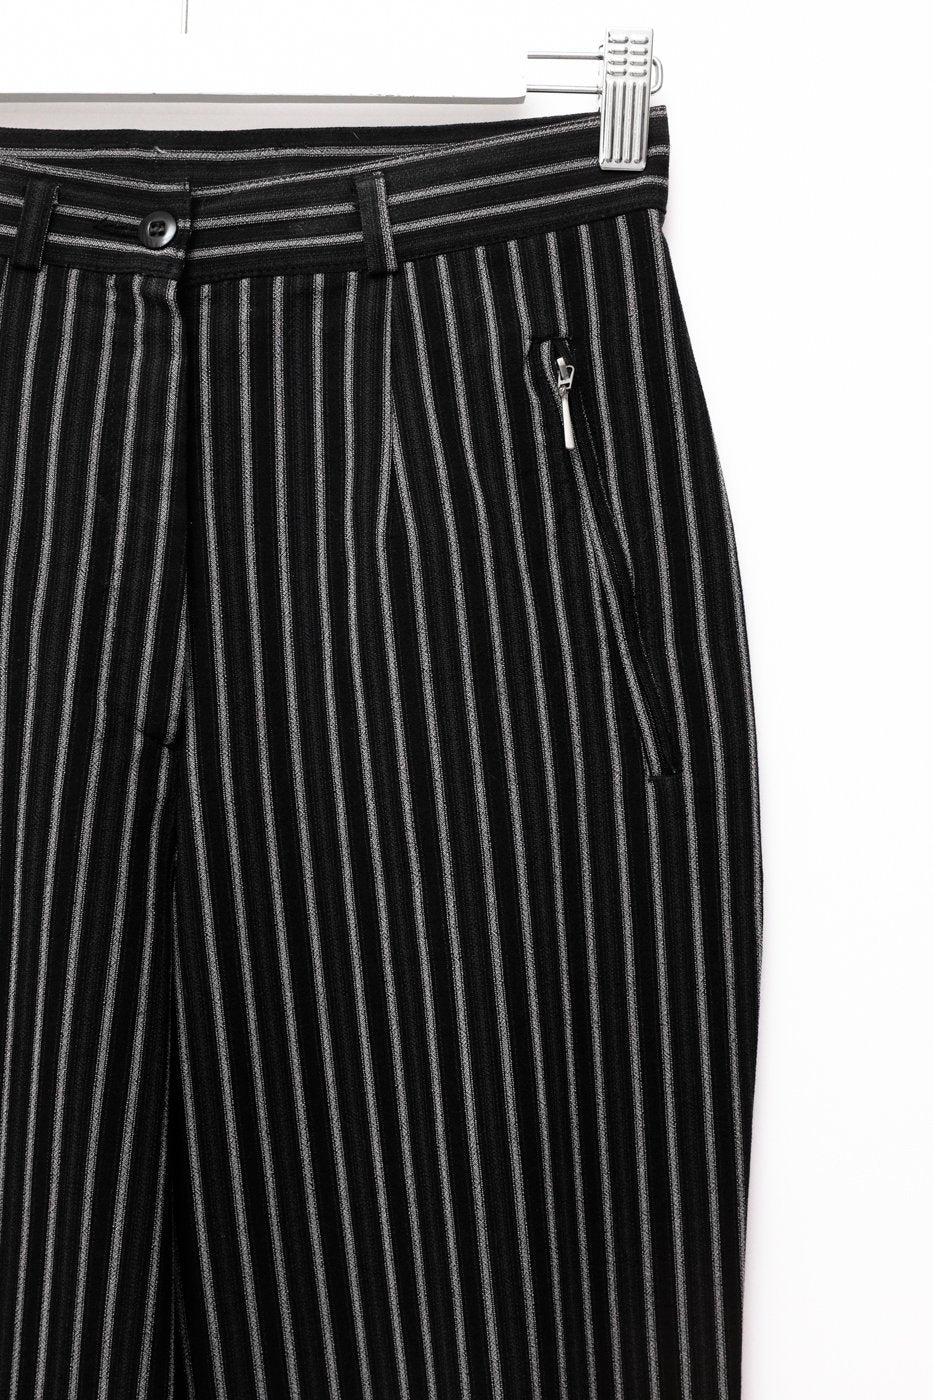 0492_PINSTRIPE CARROT VINTAGE TROUSERS